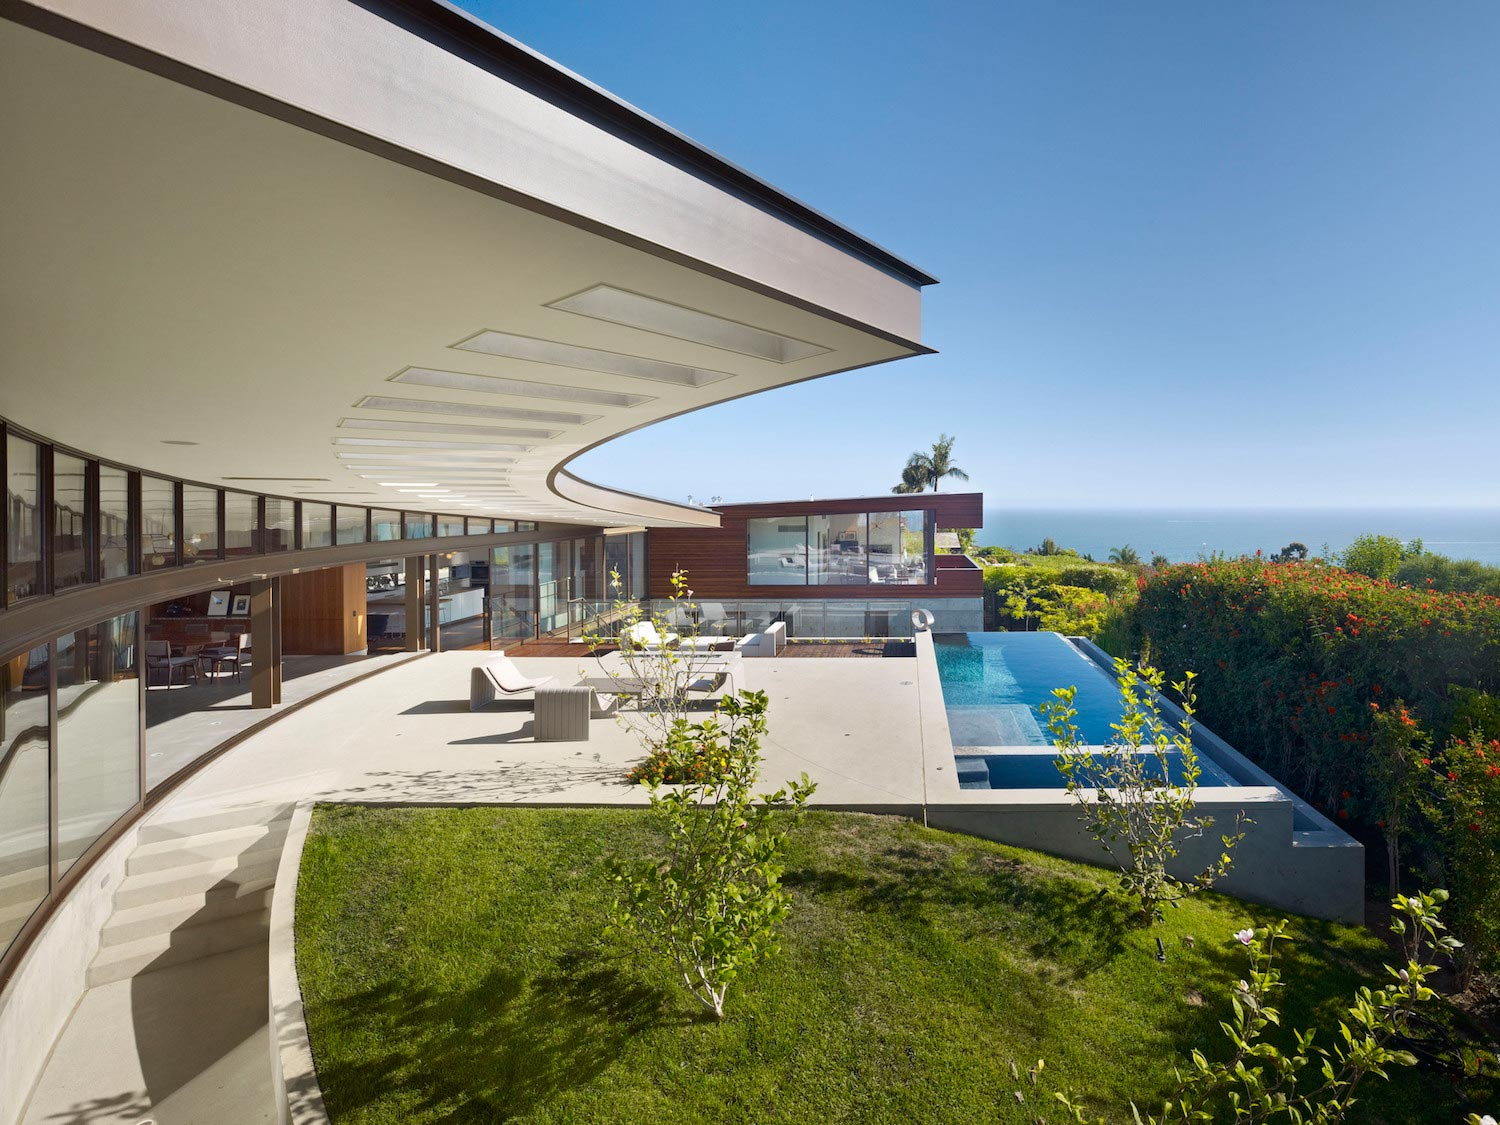 Residence in los angeles that overlooks the panorama of - Villa moderne los angeles meridith baer ...